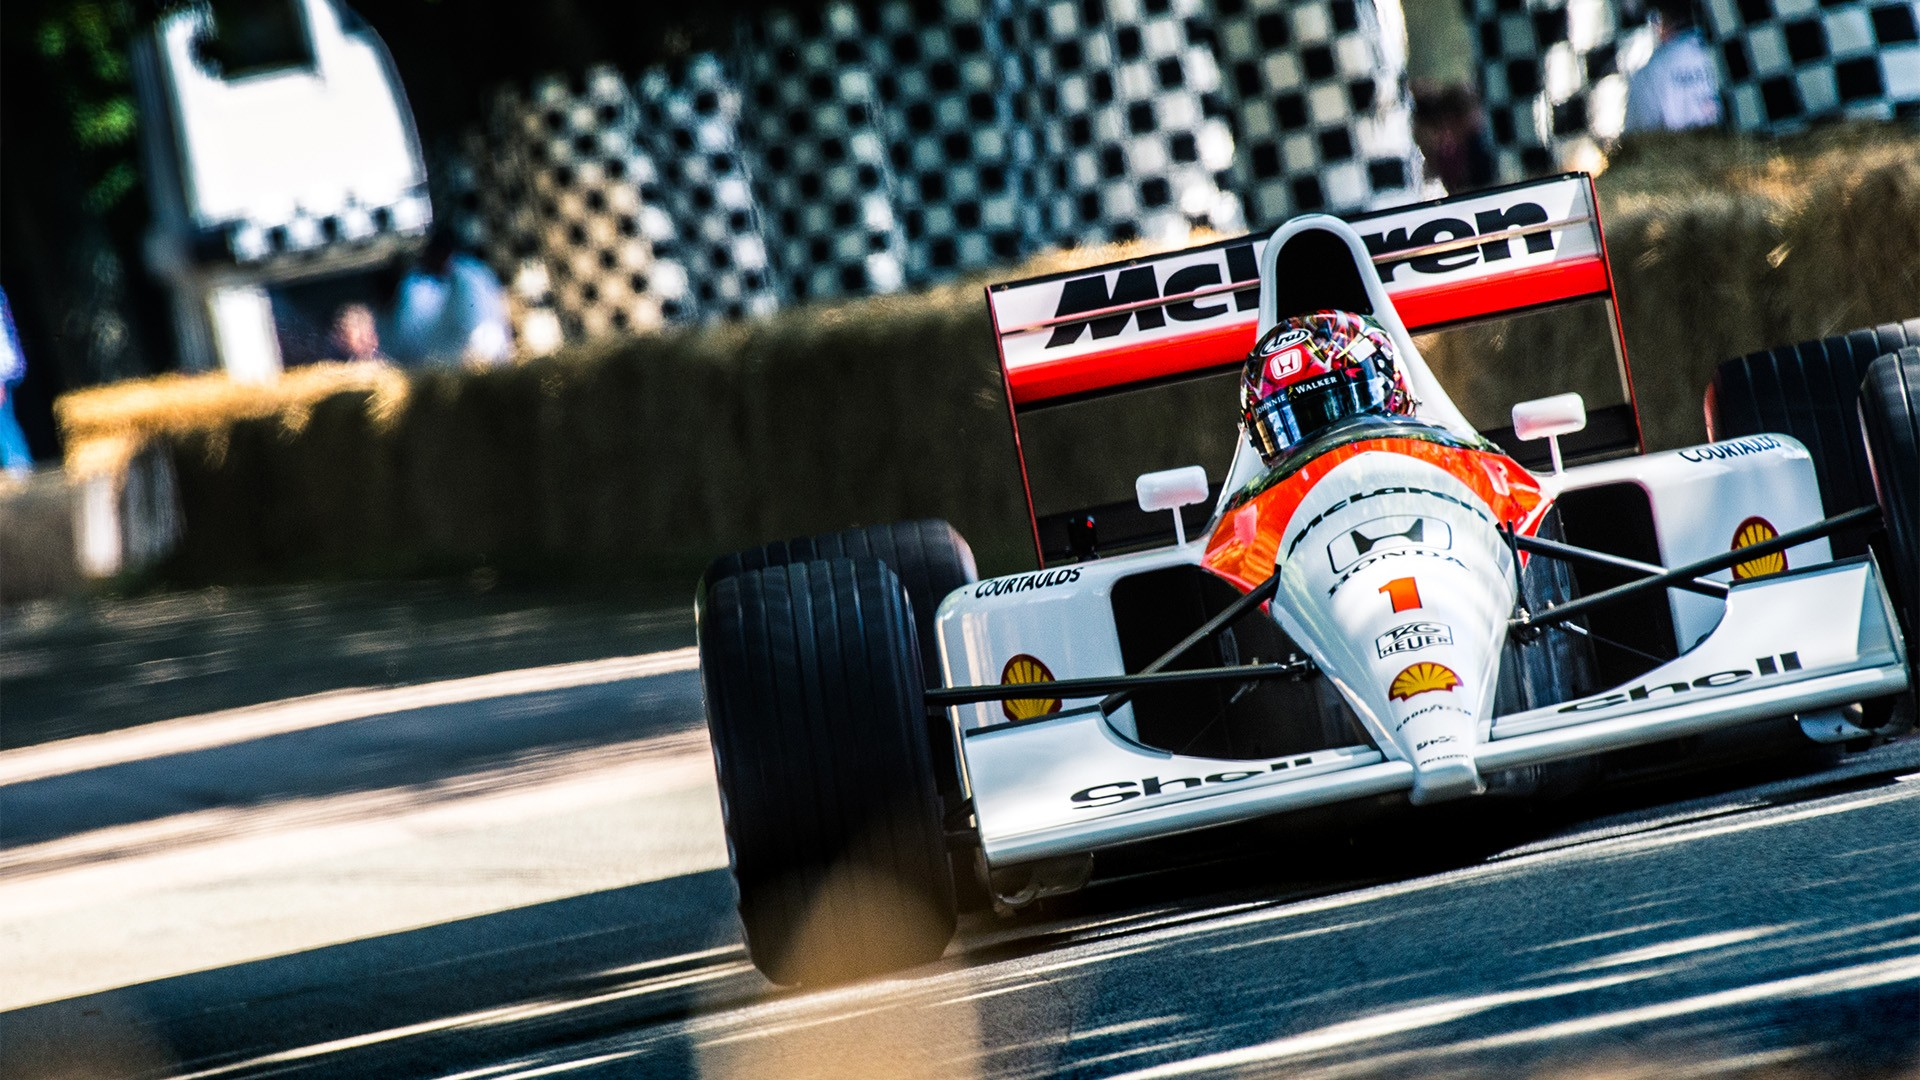 Goodwood Festival of Speed: The Hill